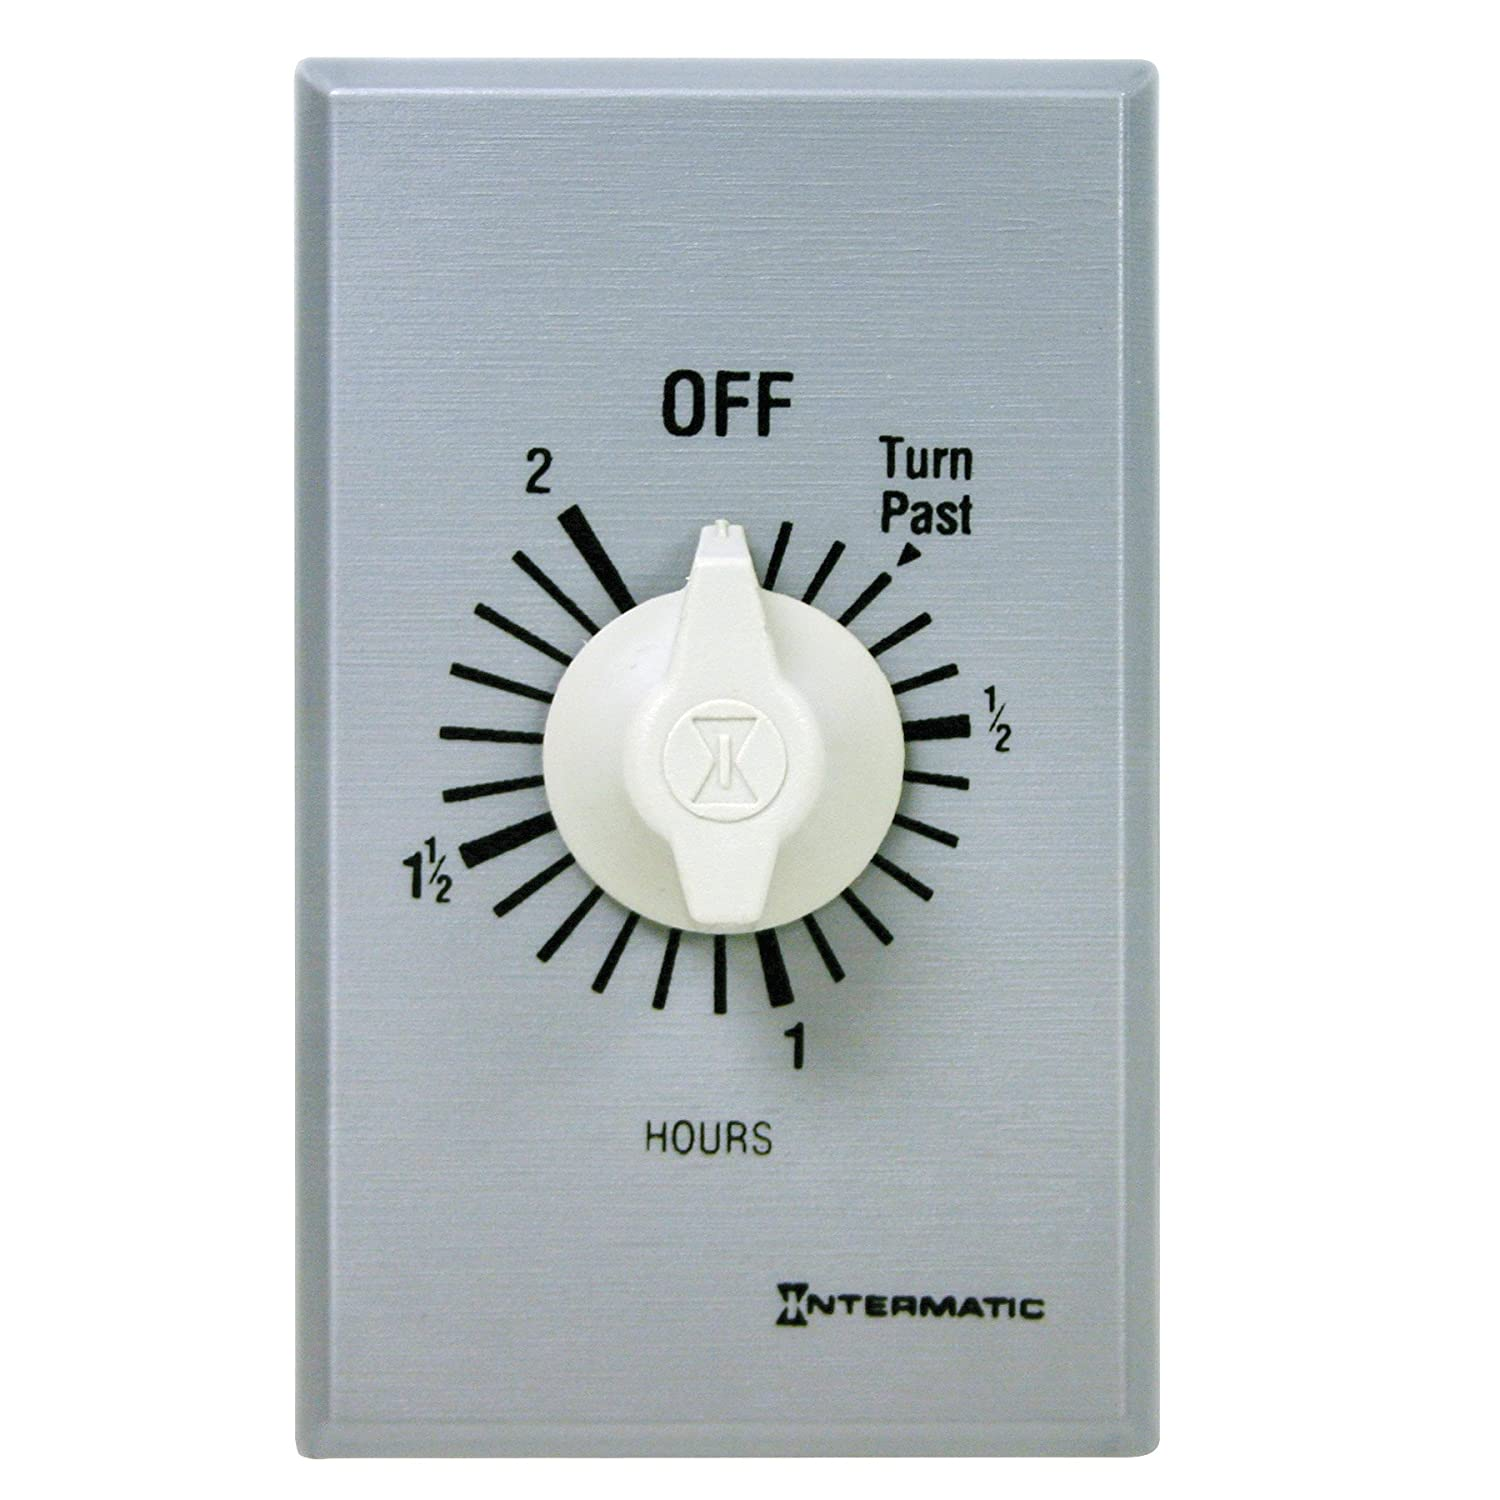 81gq9QCh2CL._SL1500_ intermatic ff2h 2 hour spring loaded wall timer, brushed metal  at webbmarketing.co